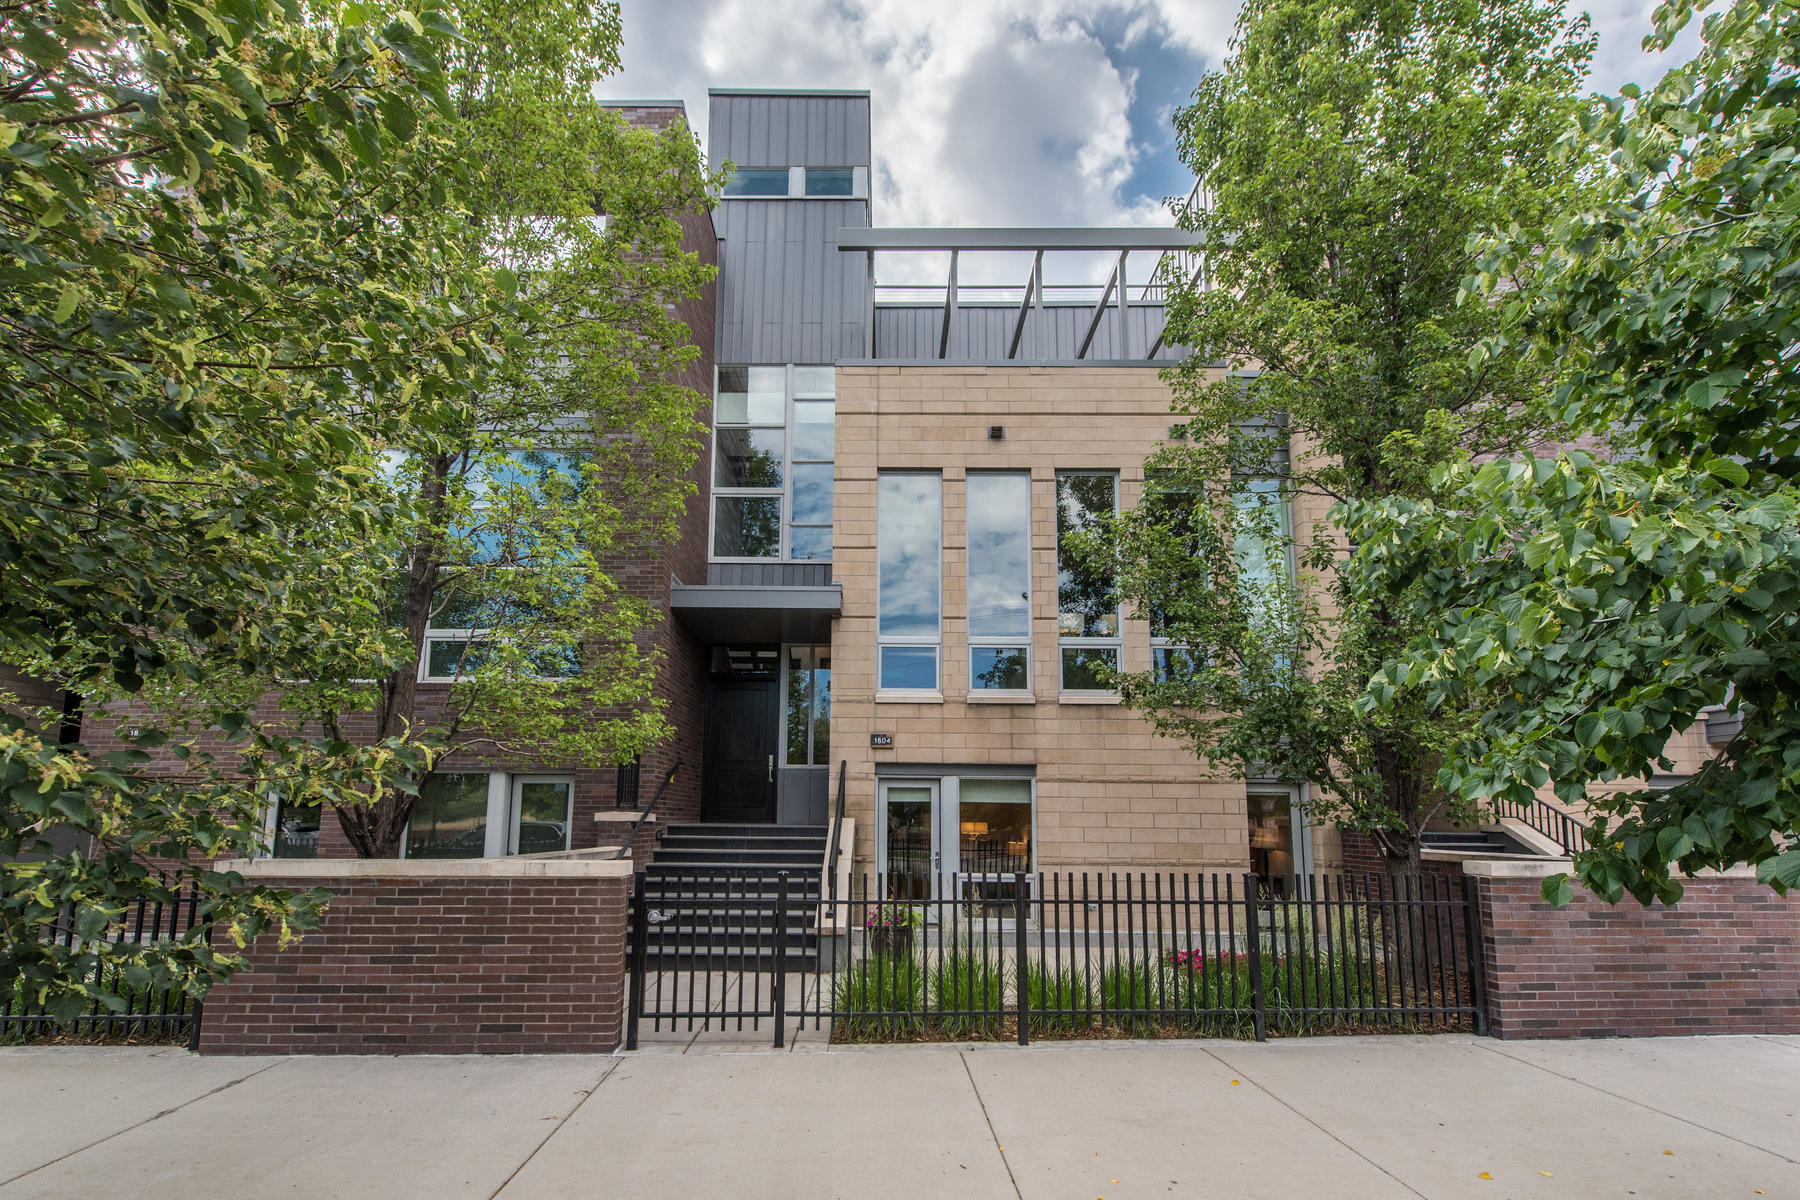 Single Family Home for Active at Stunning Brownstone in Riverfront 1804 Little Raven St Denver, Colorado 80202 United States